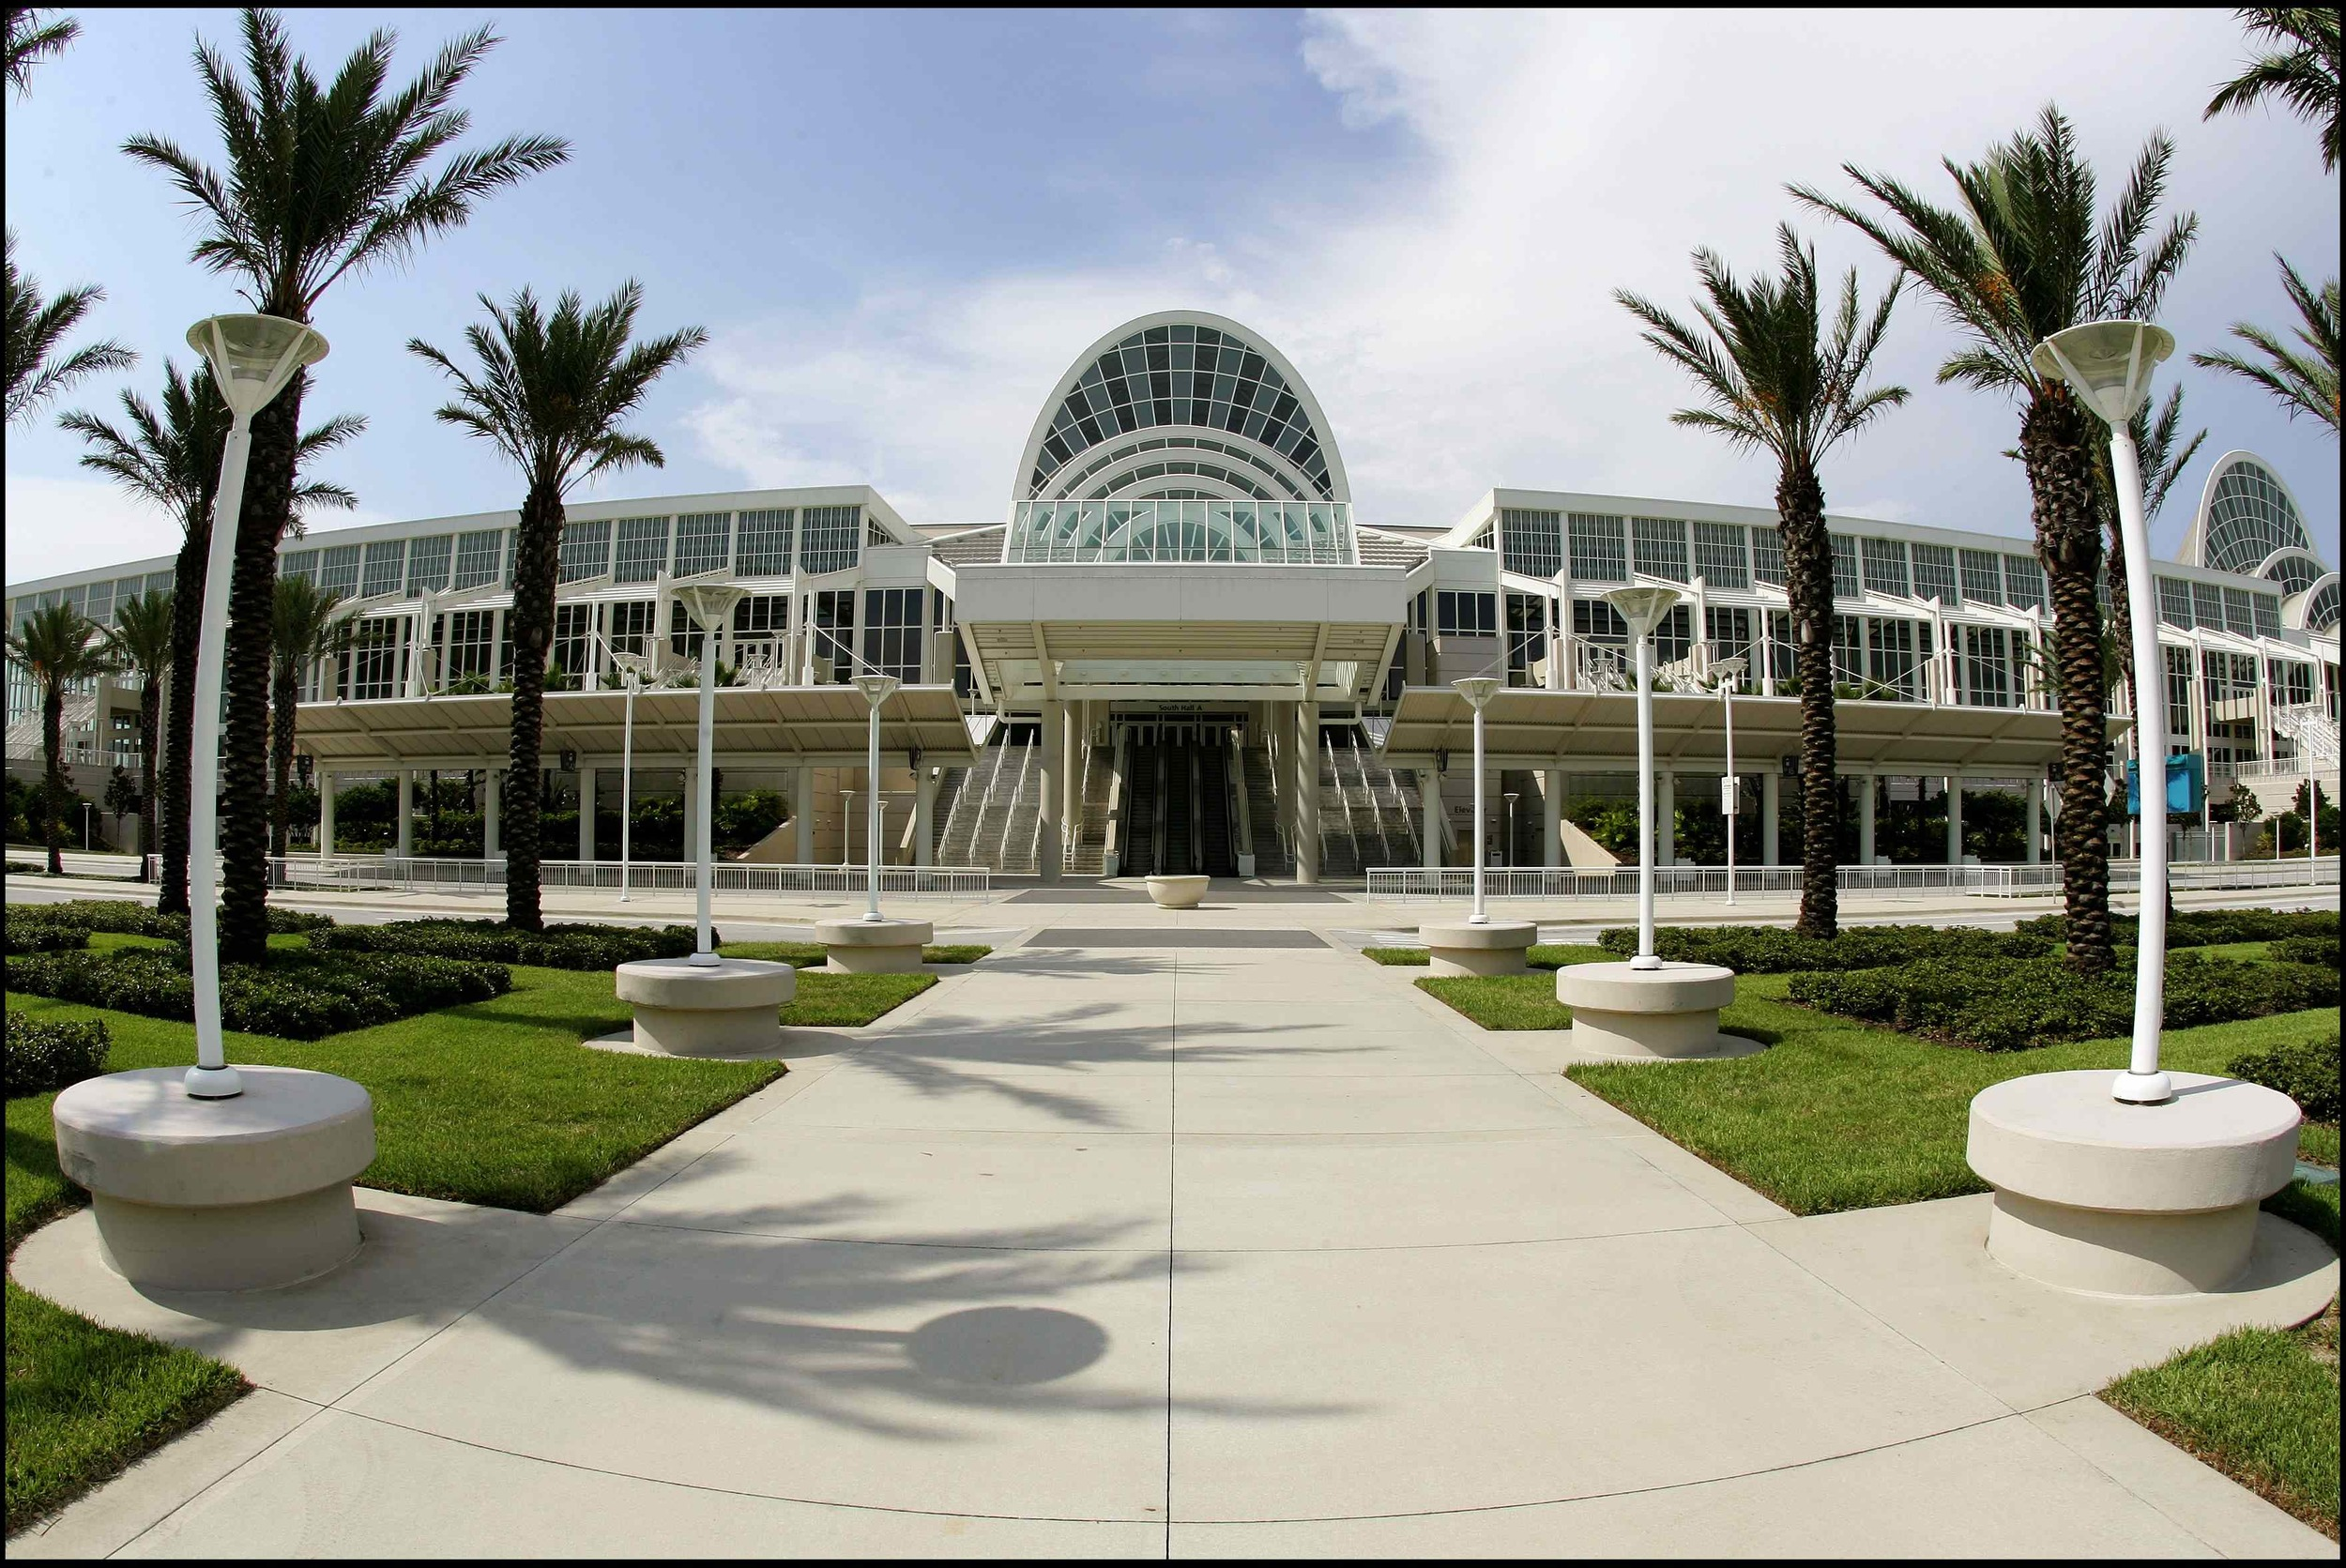 Orange County Convention Center the venue for InPrint USA 2017